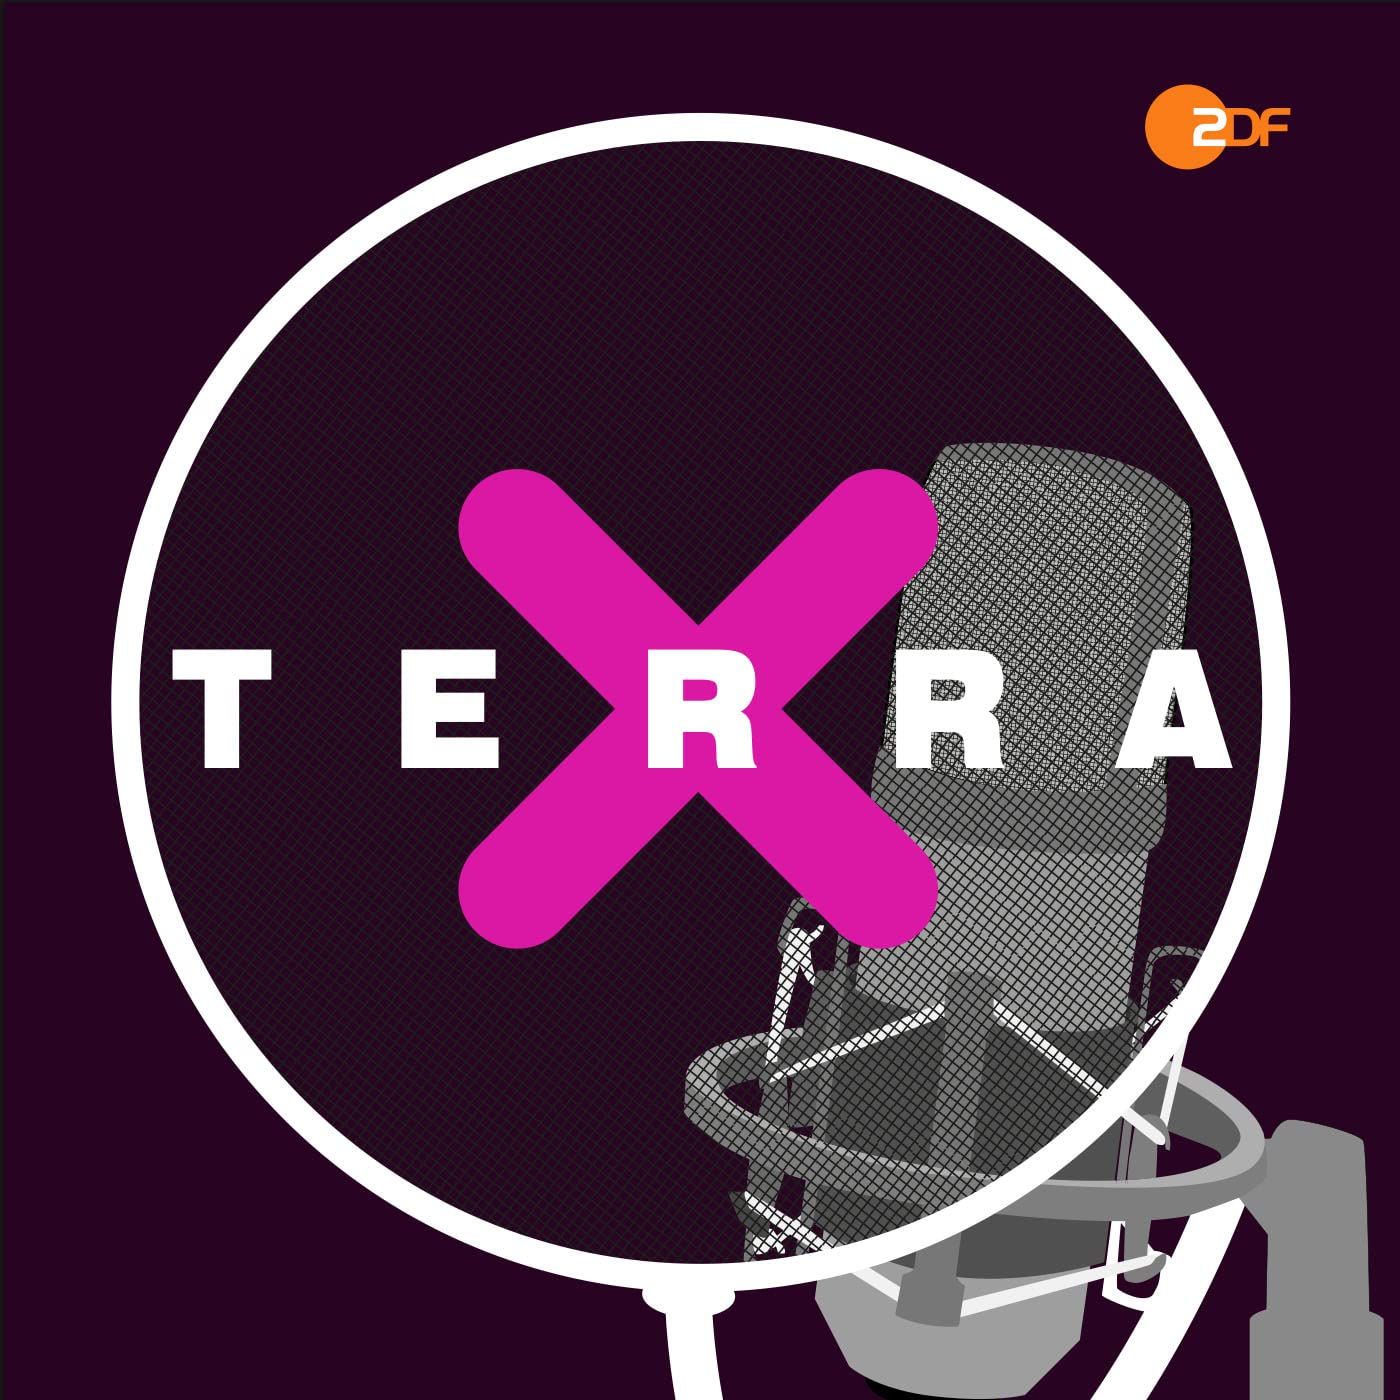 Terra X - Der Podcast